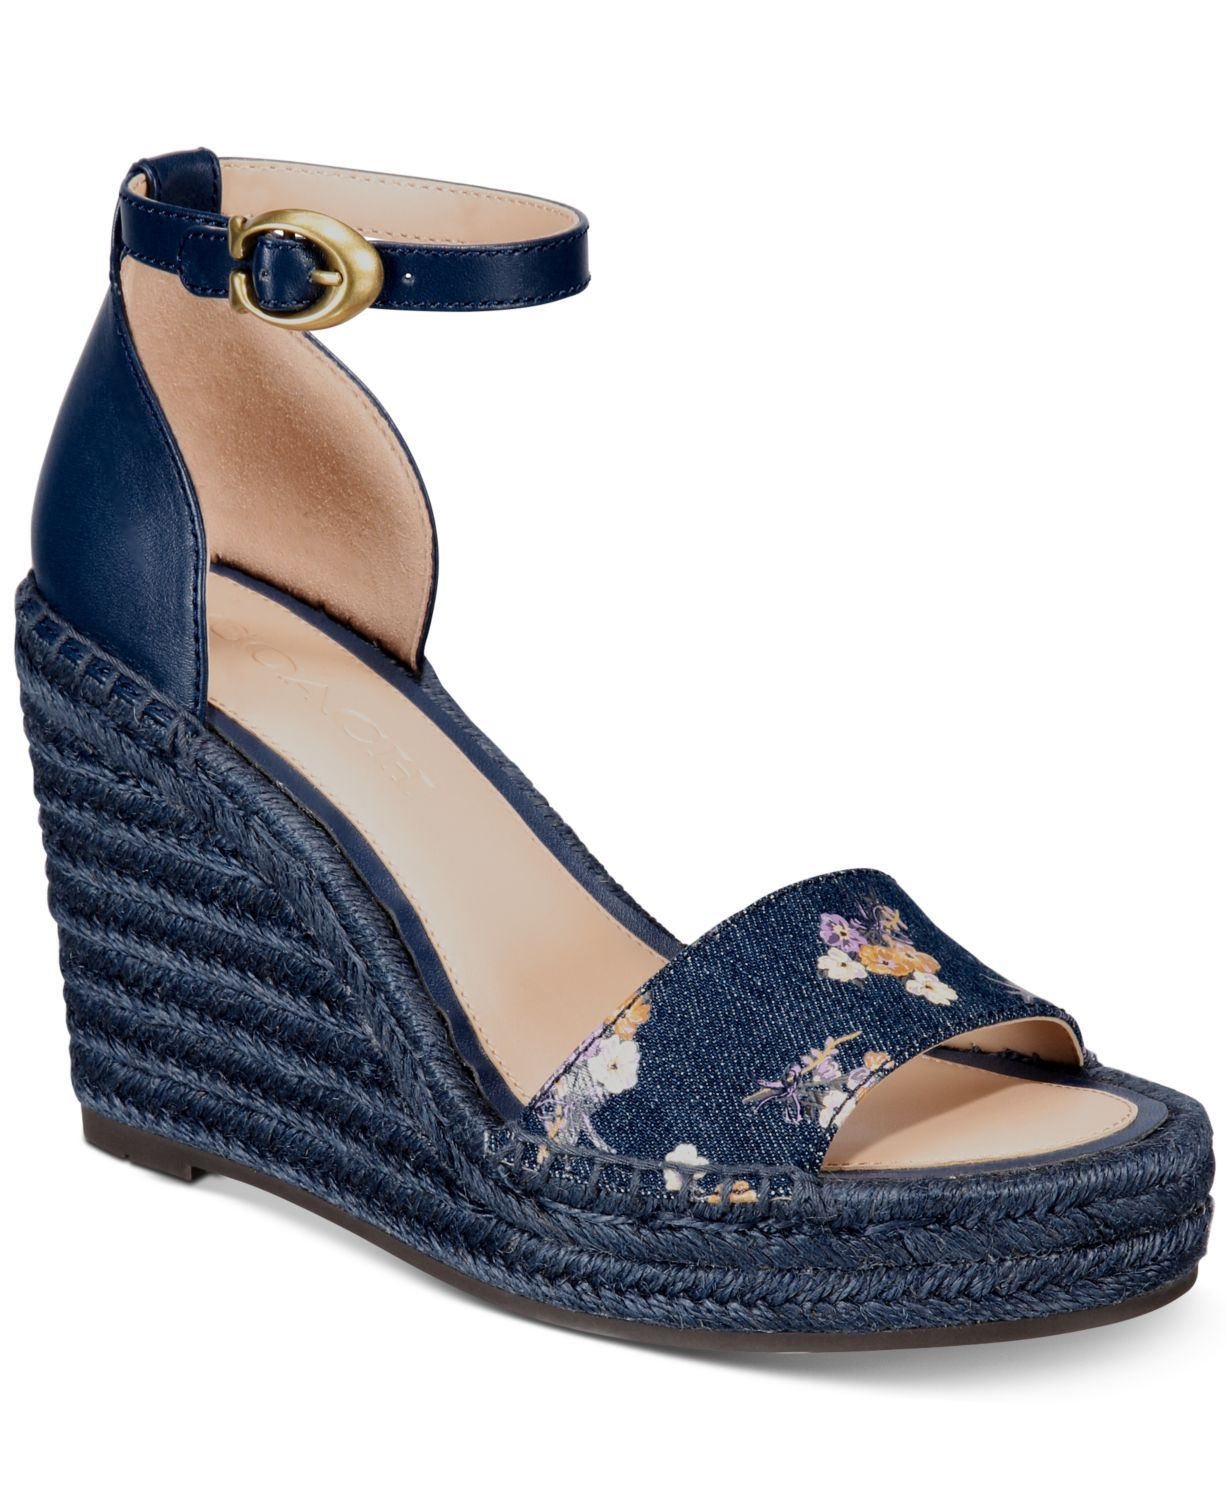 Indigo Wedges Coach macys.com $165.00 SHOP NOW An unexpected color makes any shoe instantly feel more out-of-the-box. Blue accessories are having a major moment per Macy's The Edit : Get in on the trend with this denim-esque wedge.